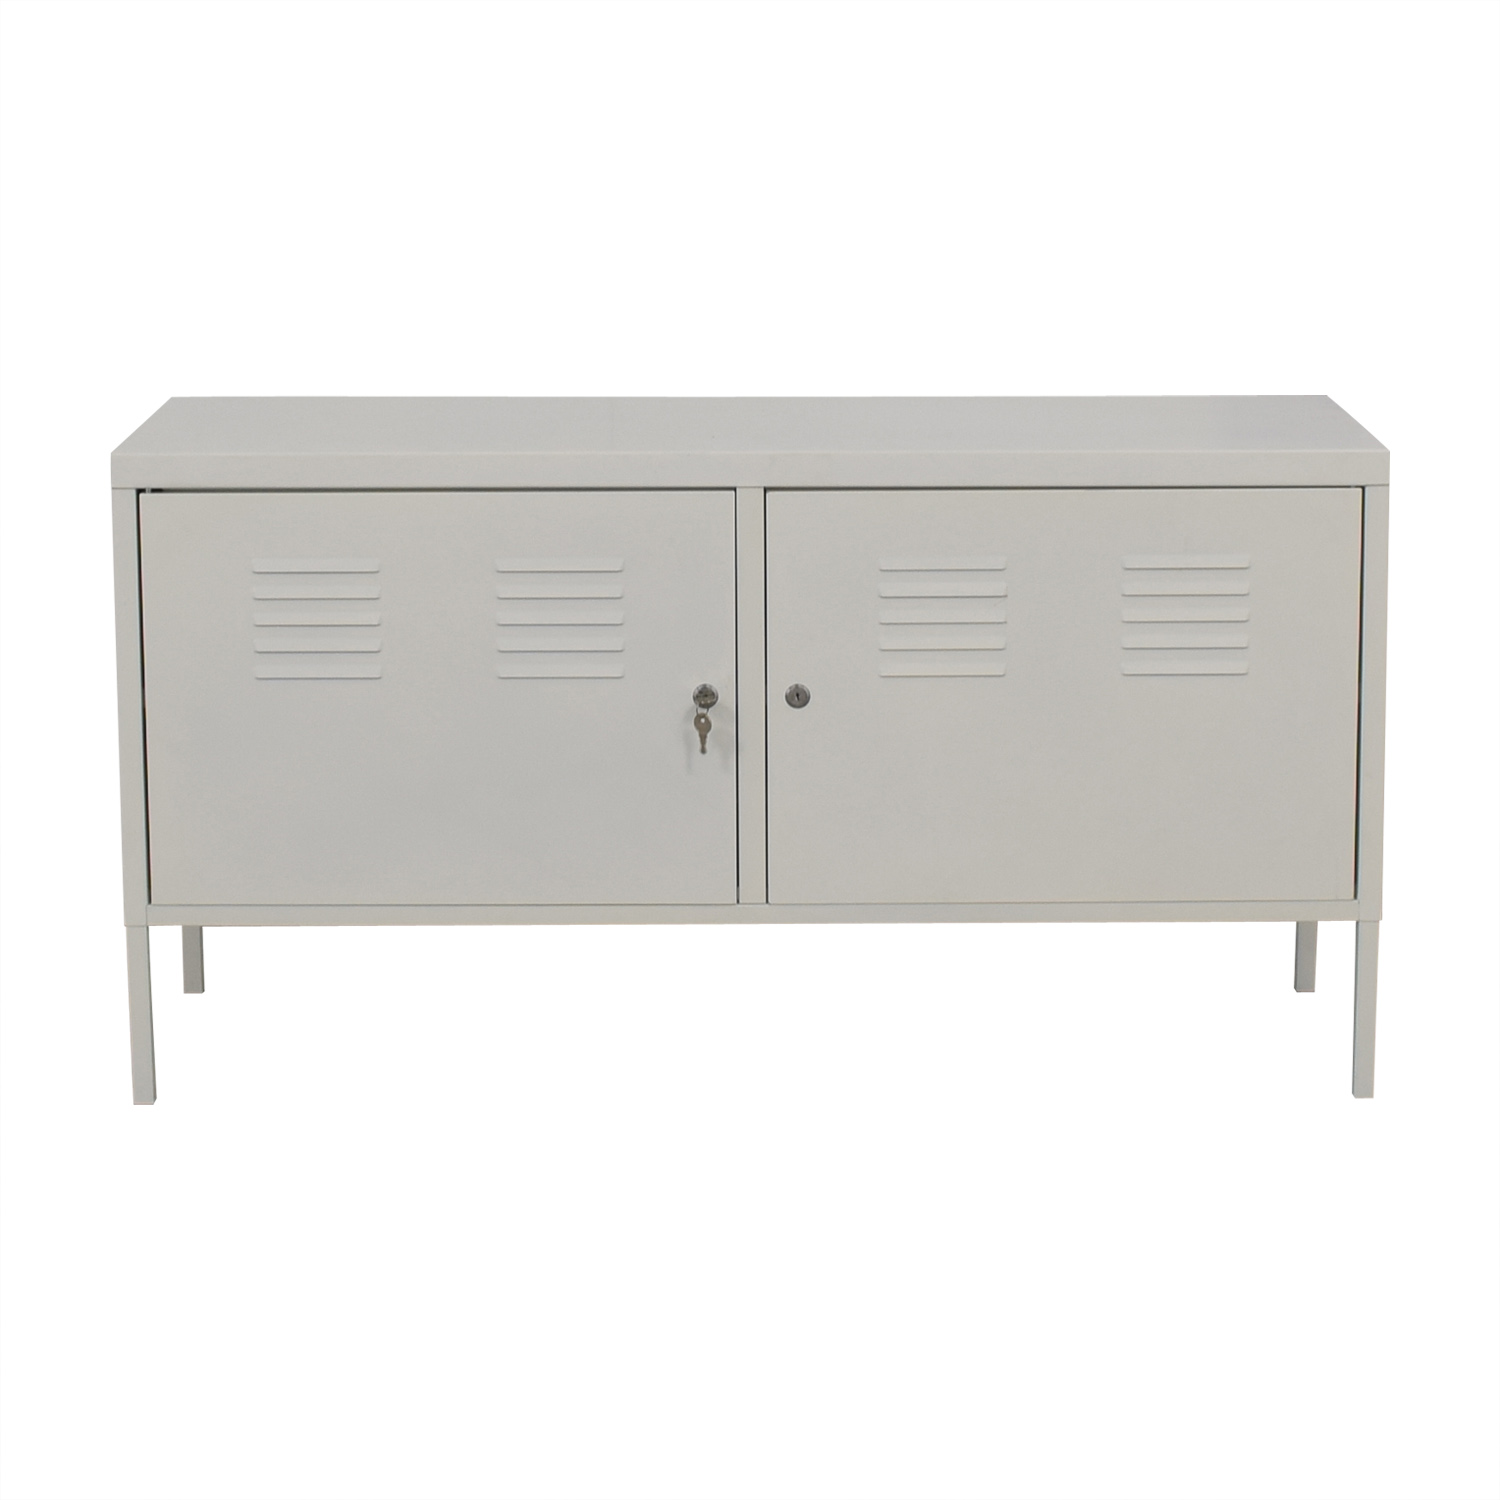 shop IKEA White Metal Locker Cabinet IKEA Storage